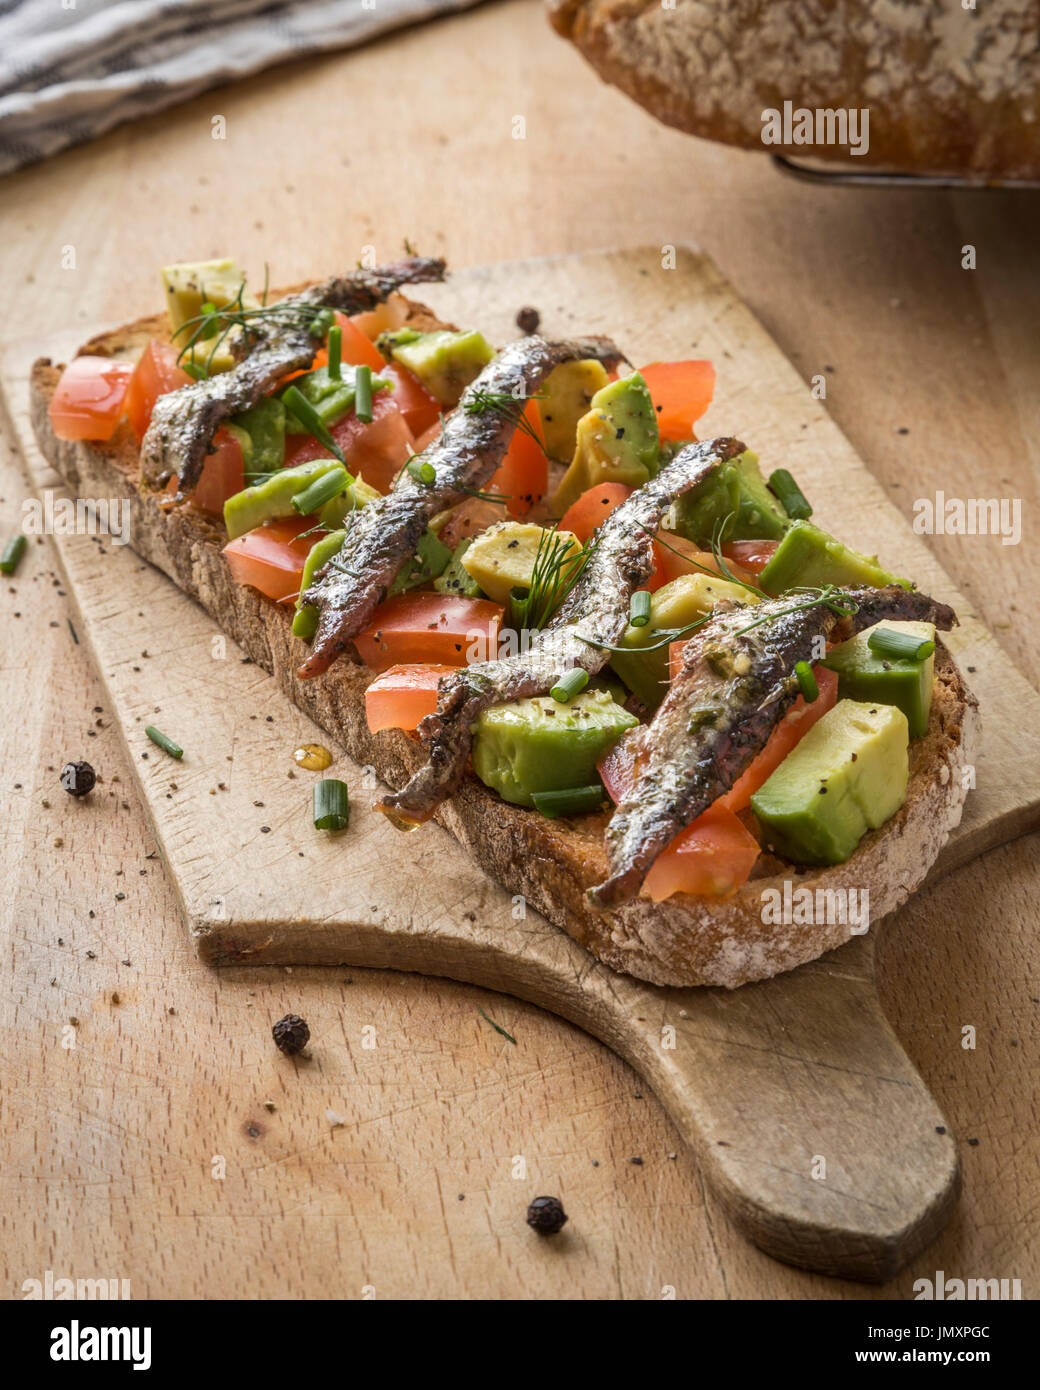 Toasted sourdough bread with Tomato, Avocado and Anchovies. Stock Photo